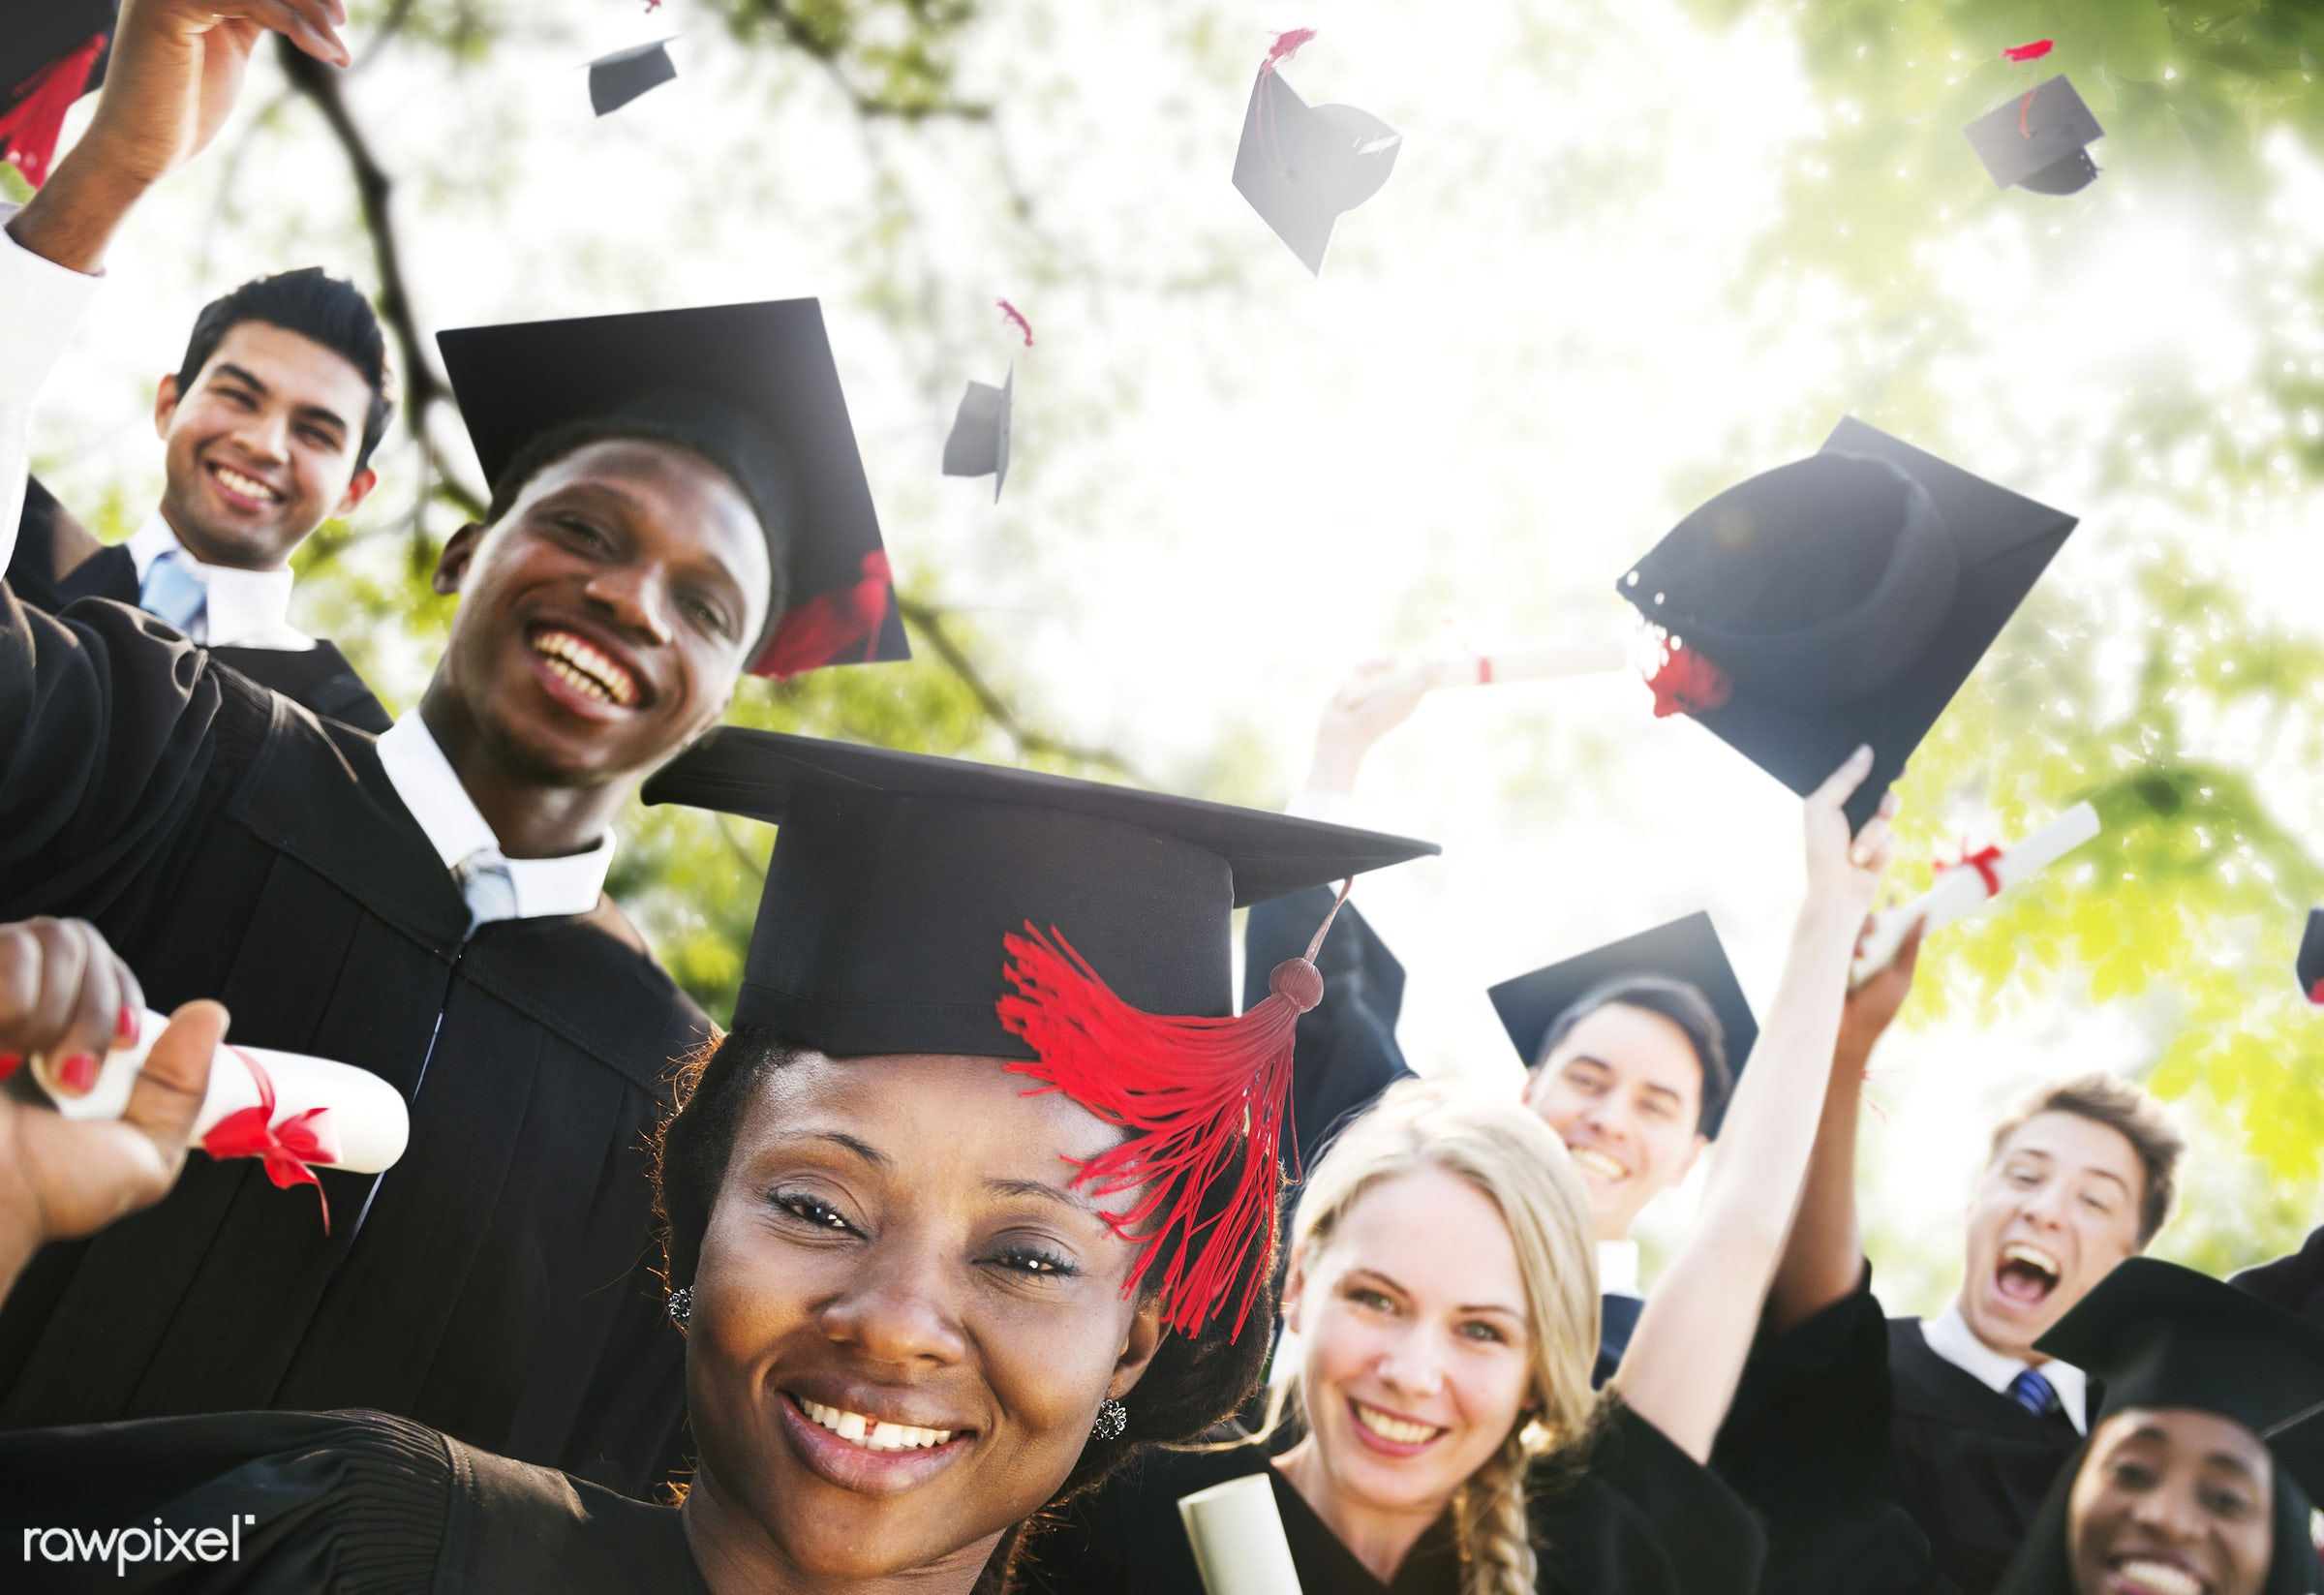 diverse, cap, college, raising, education, people, graduation, academic, teenager, aspirations, gown, cheerful, smiling,...